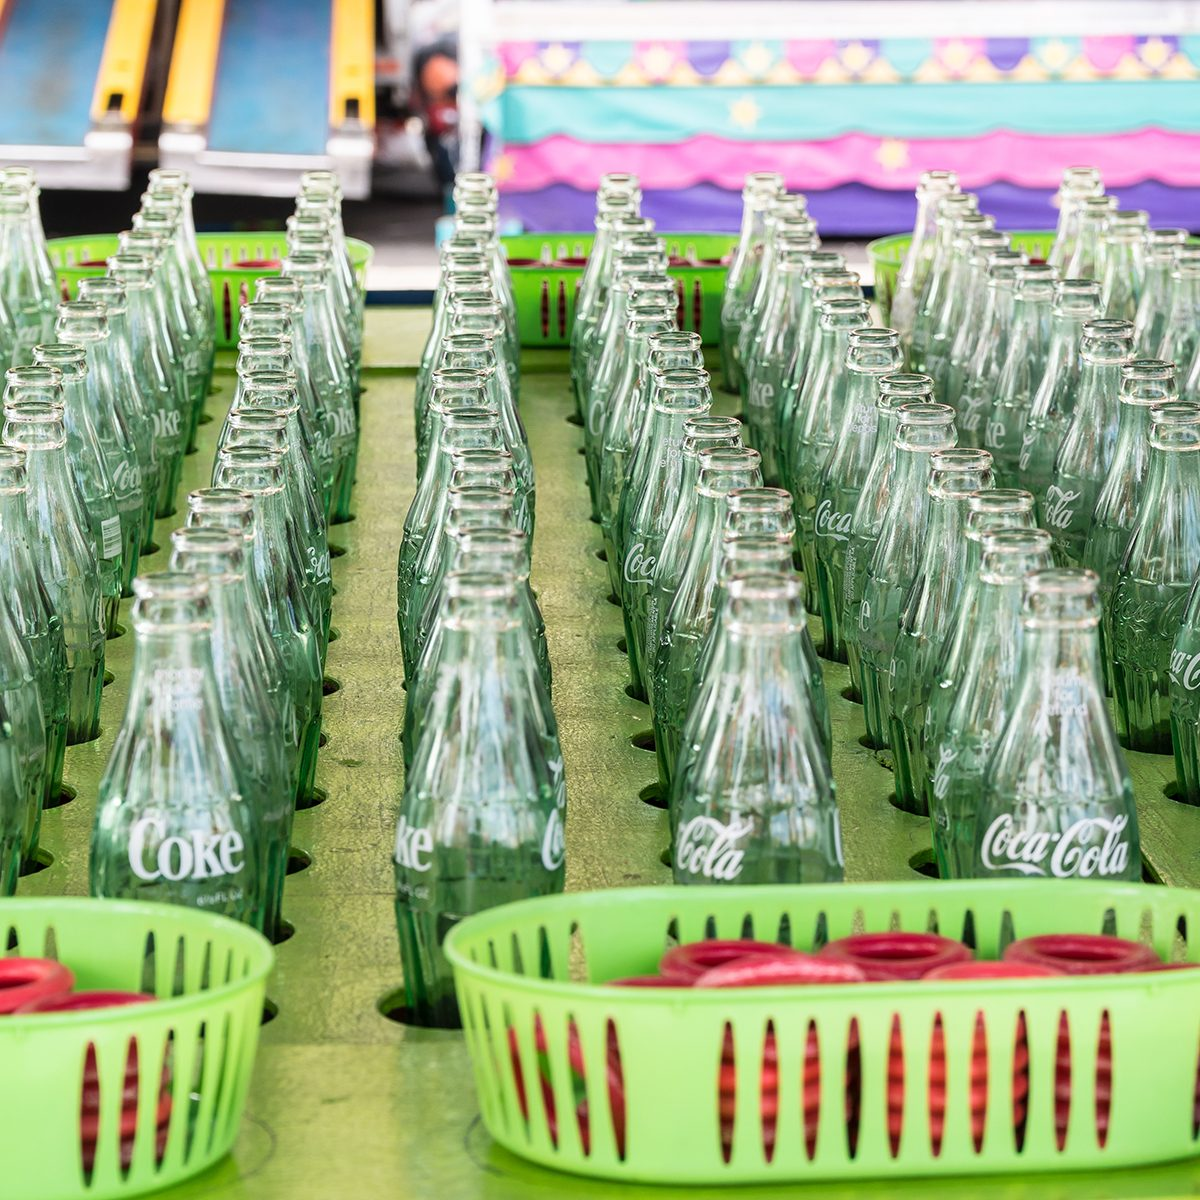 Ring toss carnival, fair game using coca cola bottles.